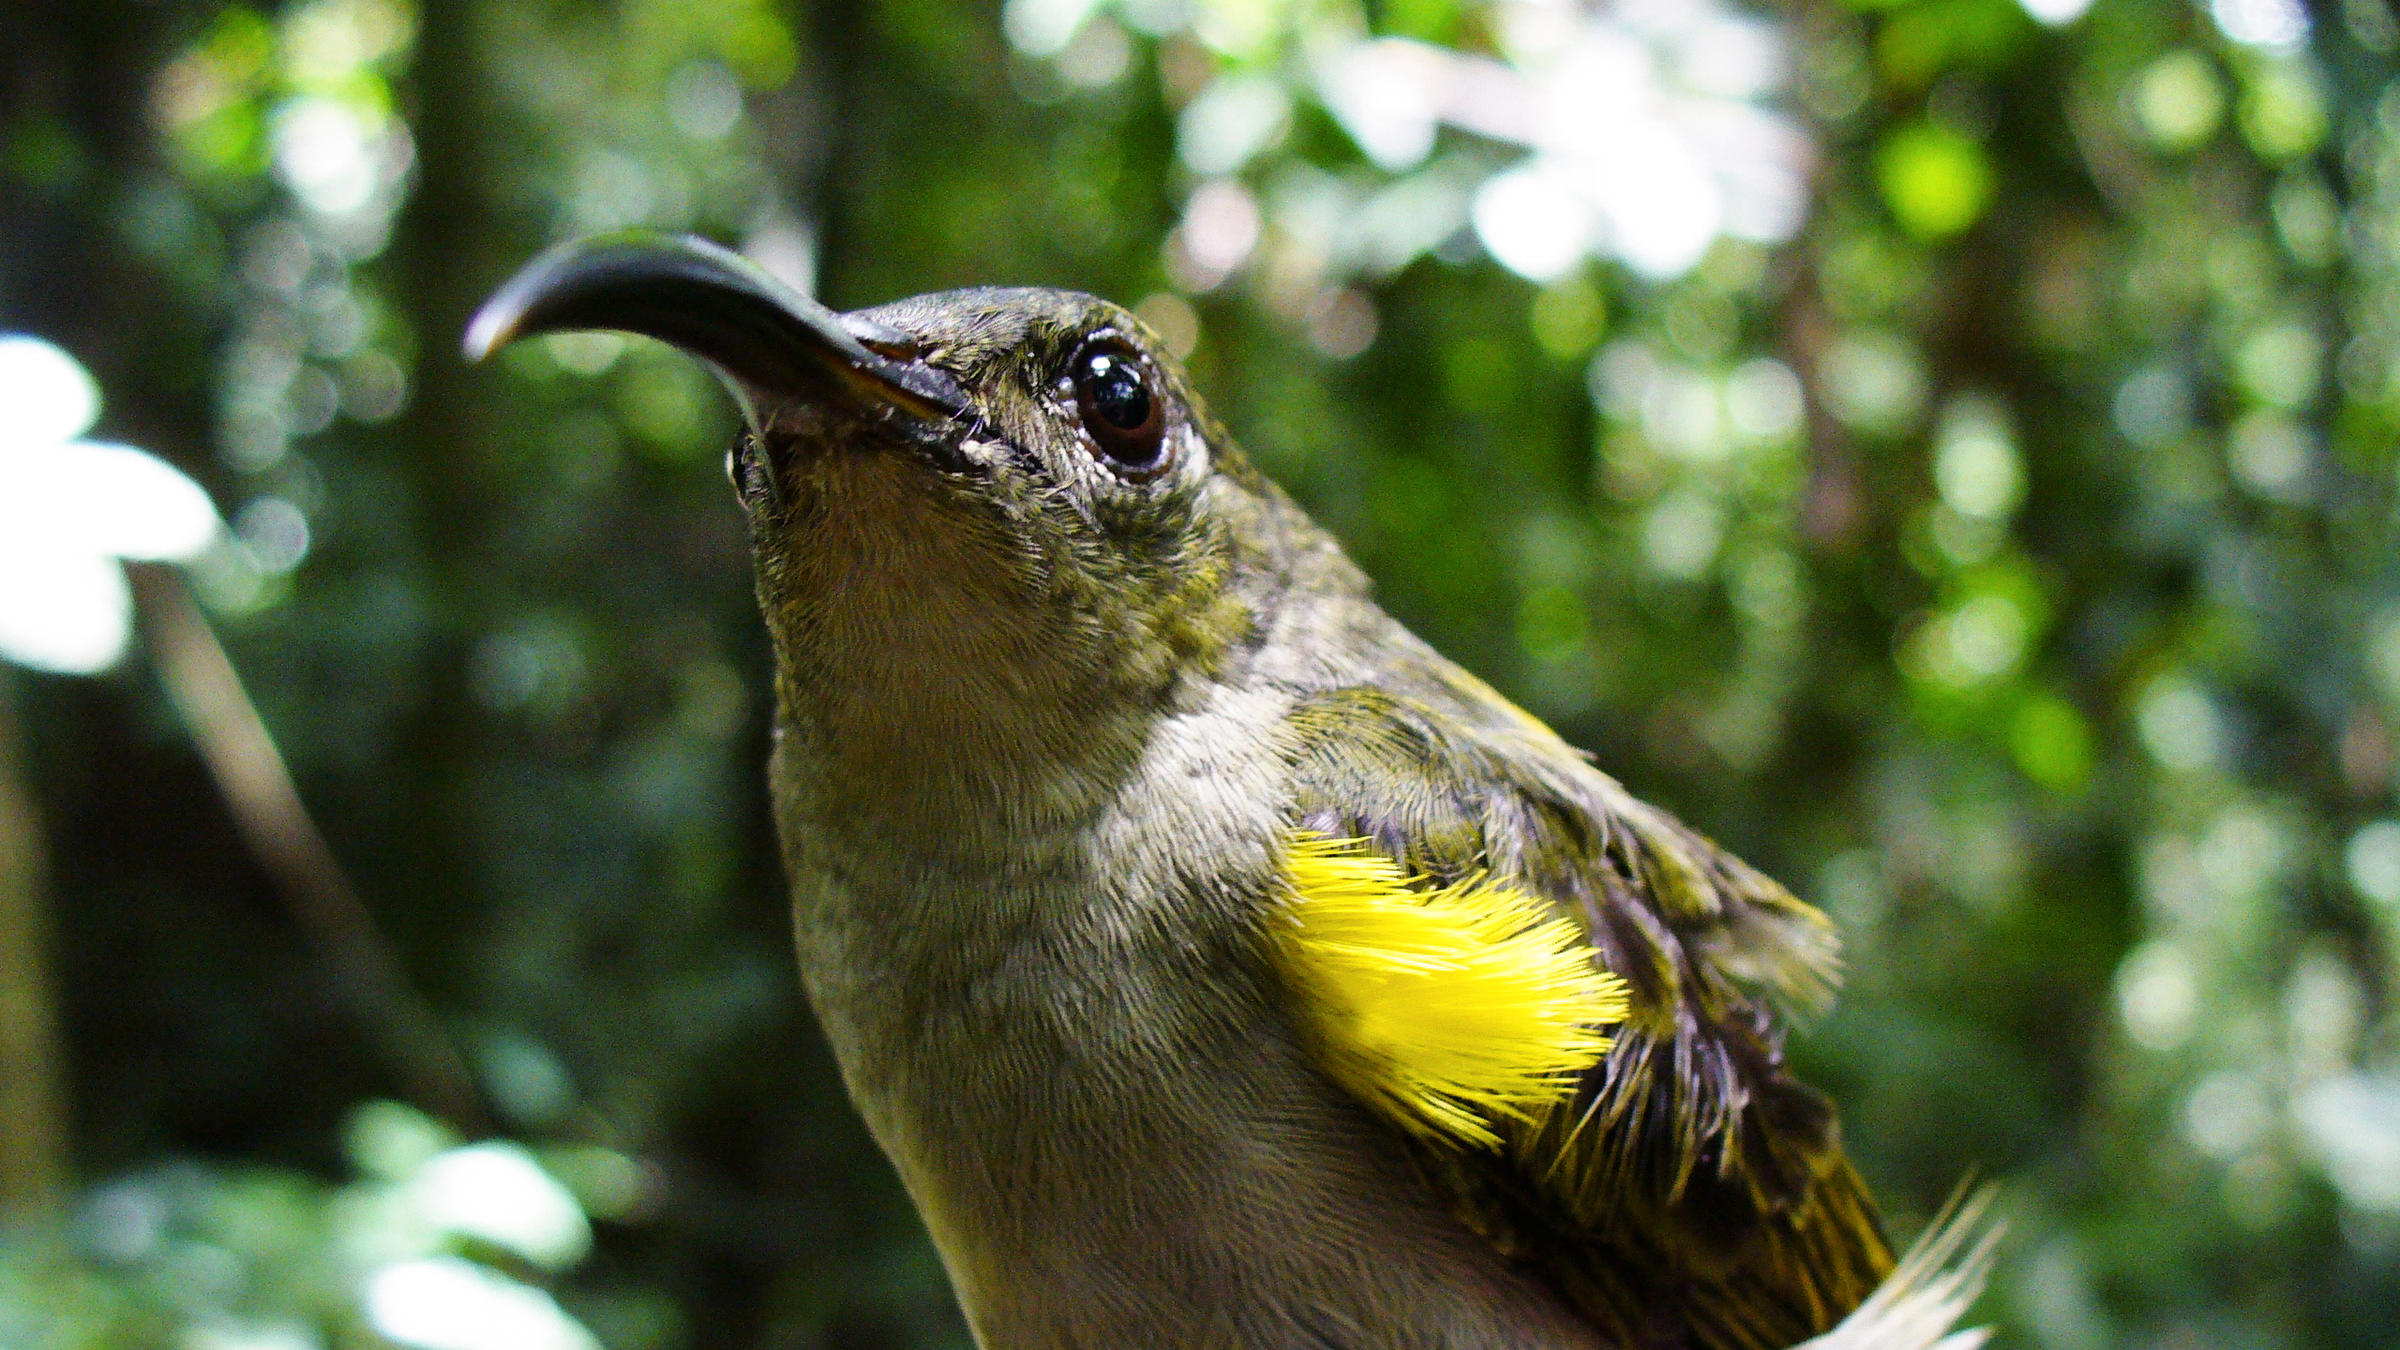 Over 15 years, the Olive Sunbird's population declined by approximately 50 percent. Nicole Arcilla